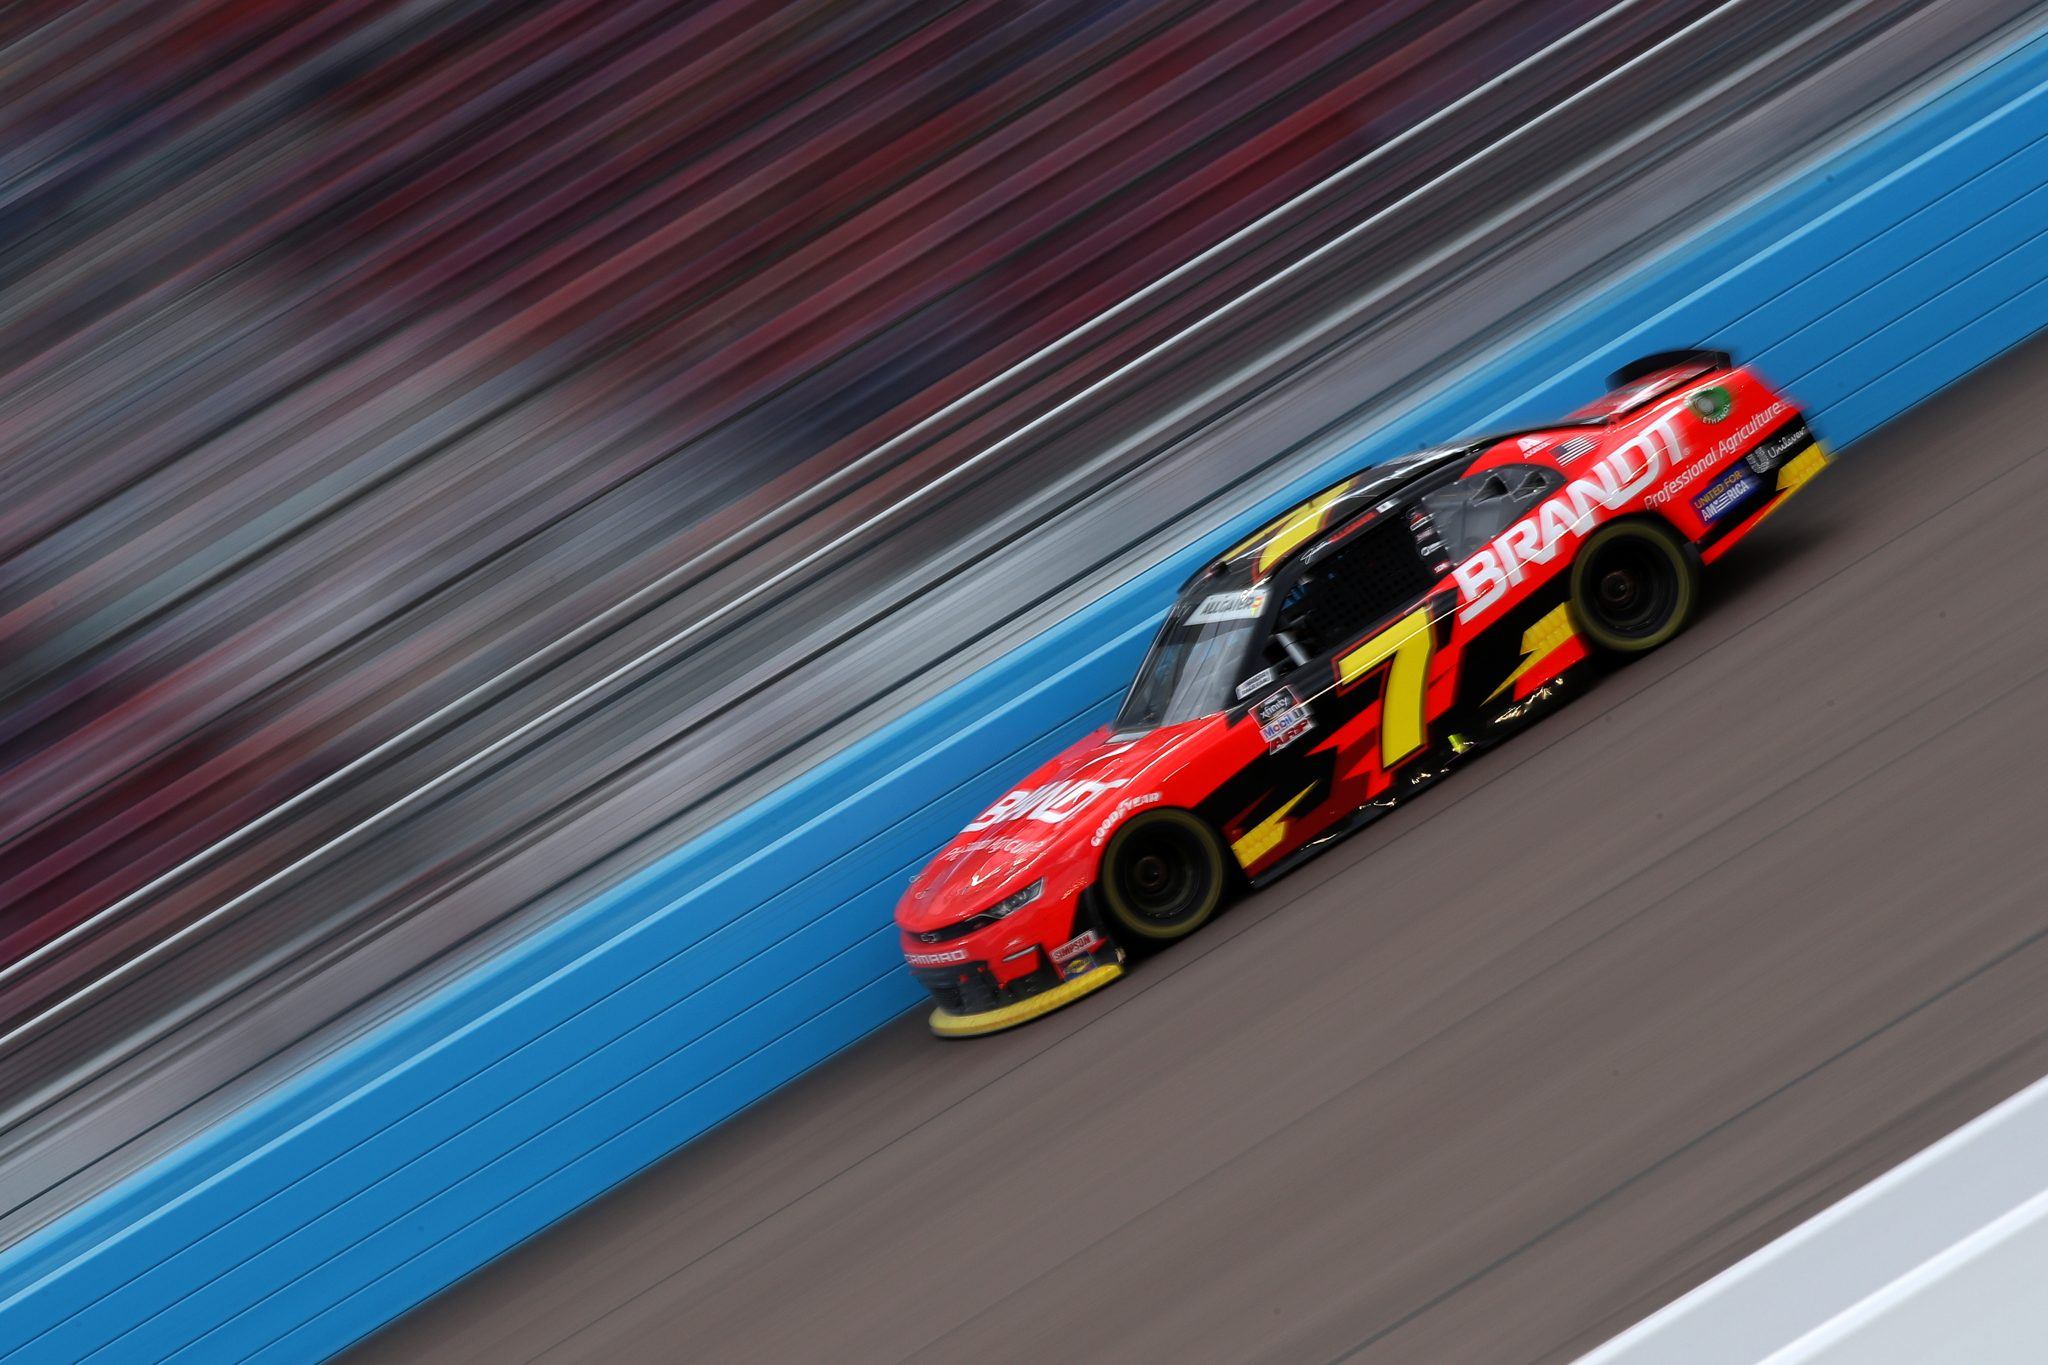 AVONDALE, ARIZONA - MARCH 13: Justin Allgaier, driver of the #7 BRANDT Chevrolet, drives during the NASCAR Xfinity Series Call 811 Before You Dig 200 presented by Arizona 811 at Phoenix Raceway on March 13, 2021 in Avondale, Arizona. (Photo by Sean Gardner/Getty Images) | Getty Images